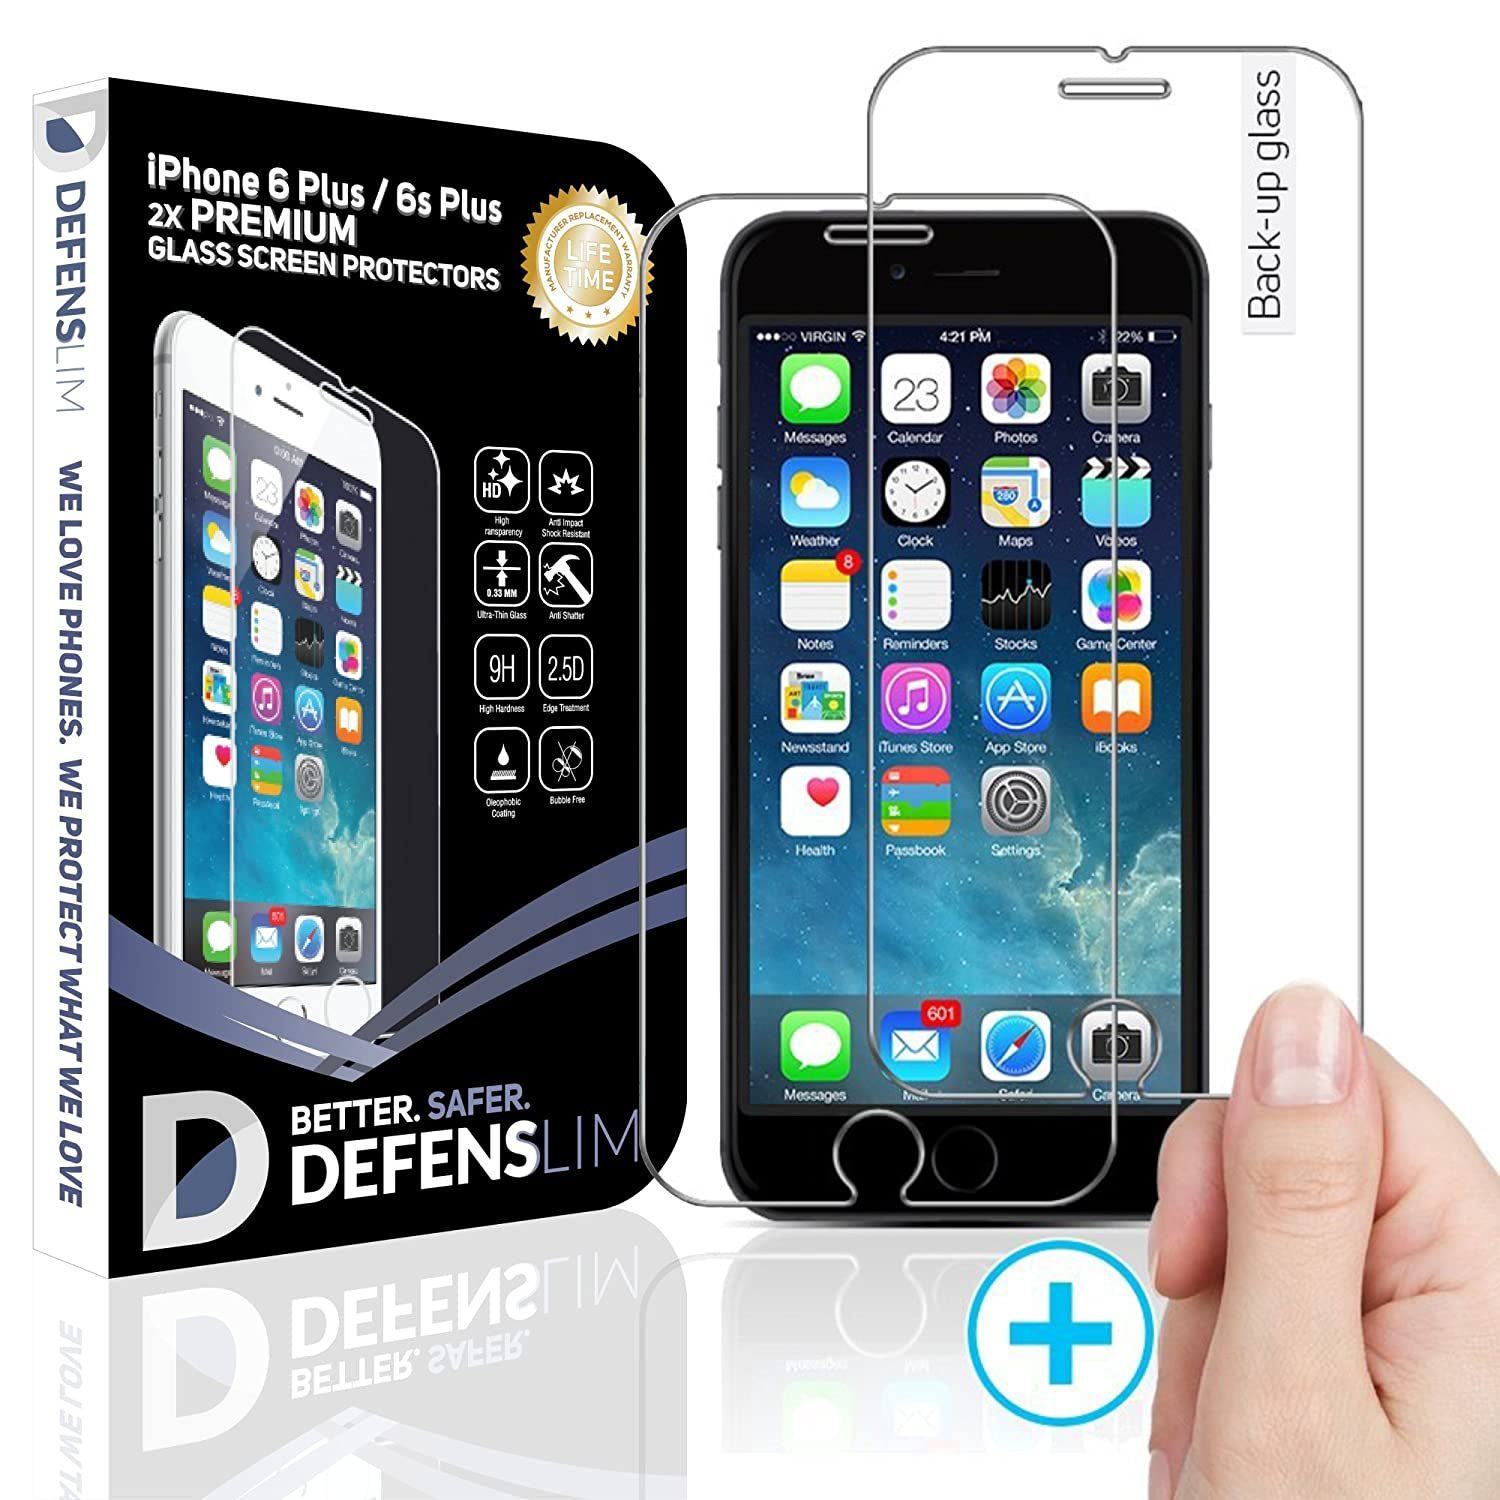 Witkeen Ultra-Clear HD Tempered Glass Protector for iPhone 6 Plus / 6s Plus (Pack of 2)